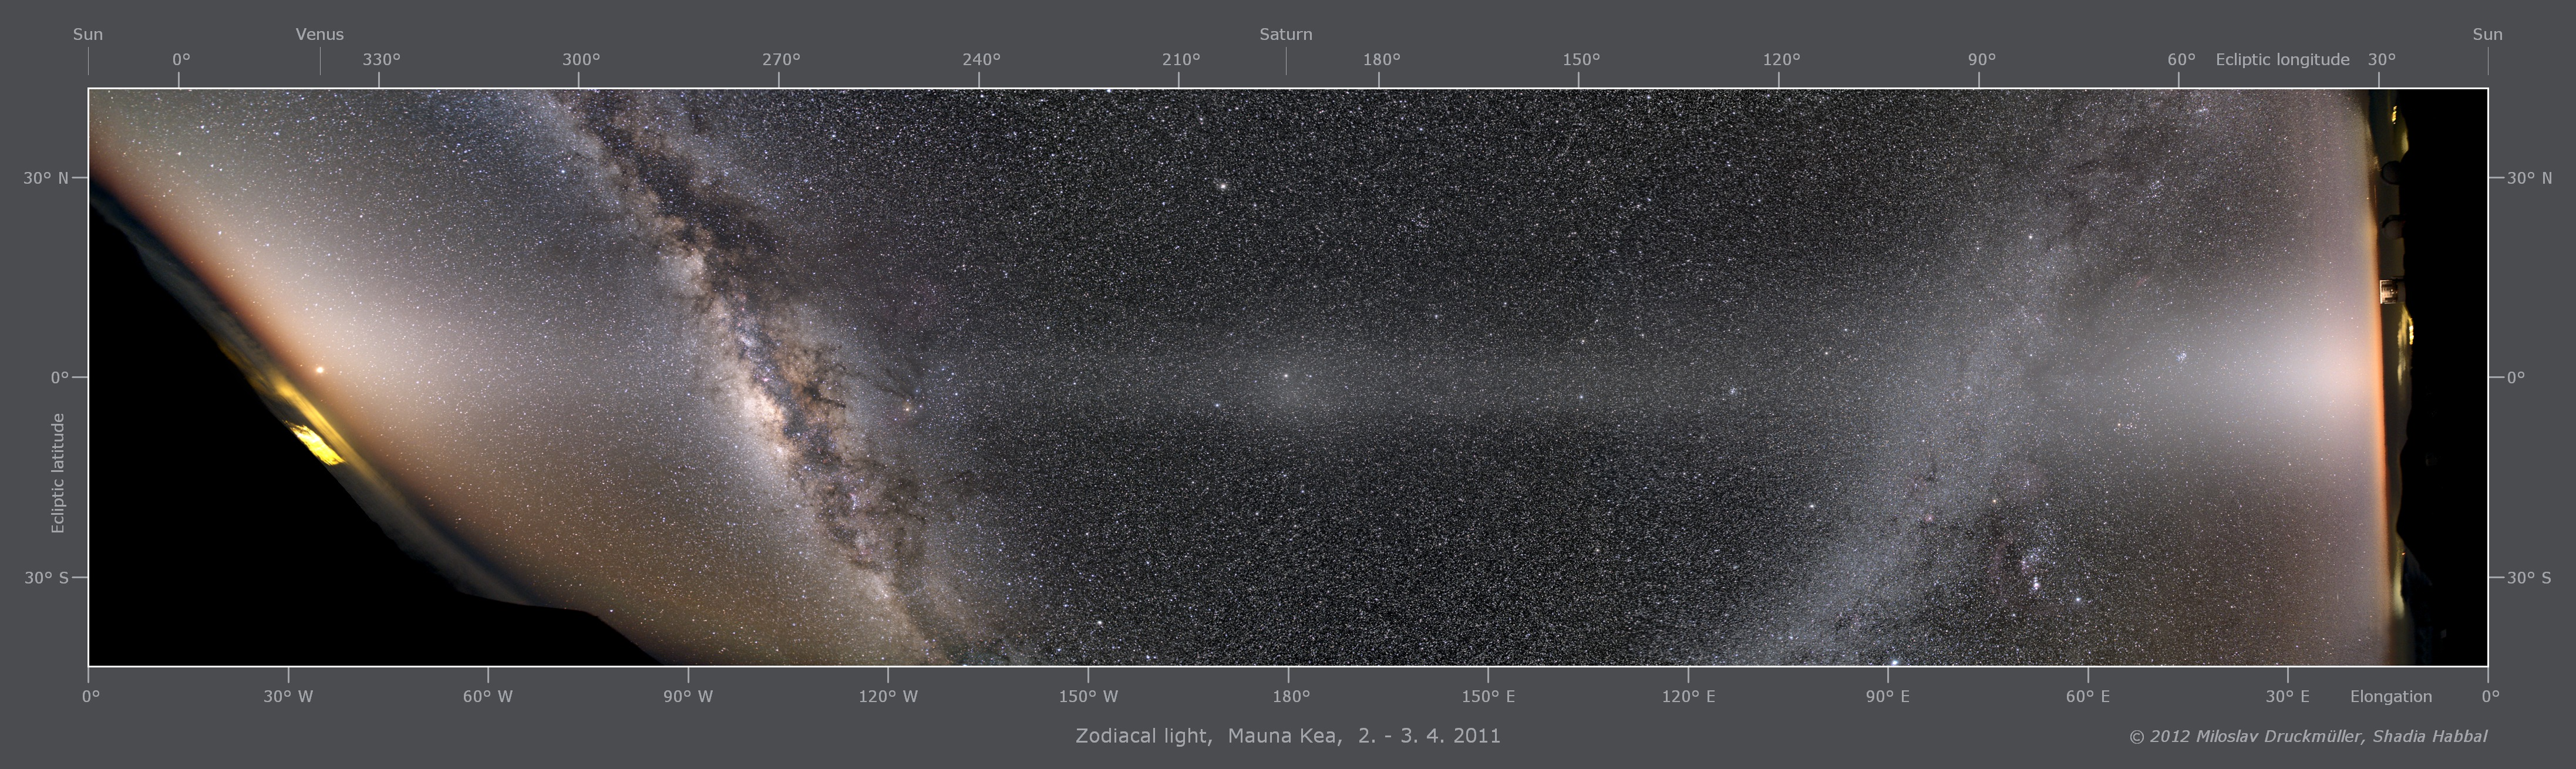 Apod 2012 April 5 Zodiacal Light Panorama